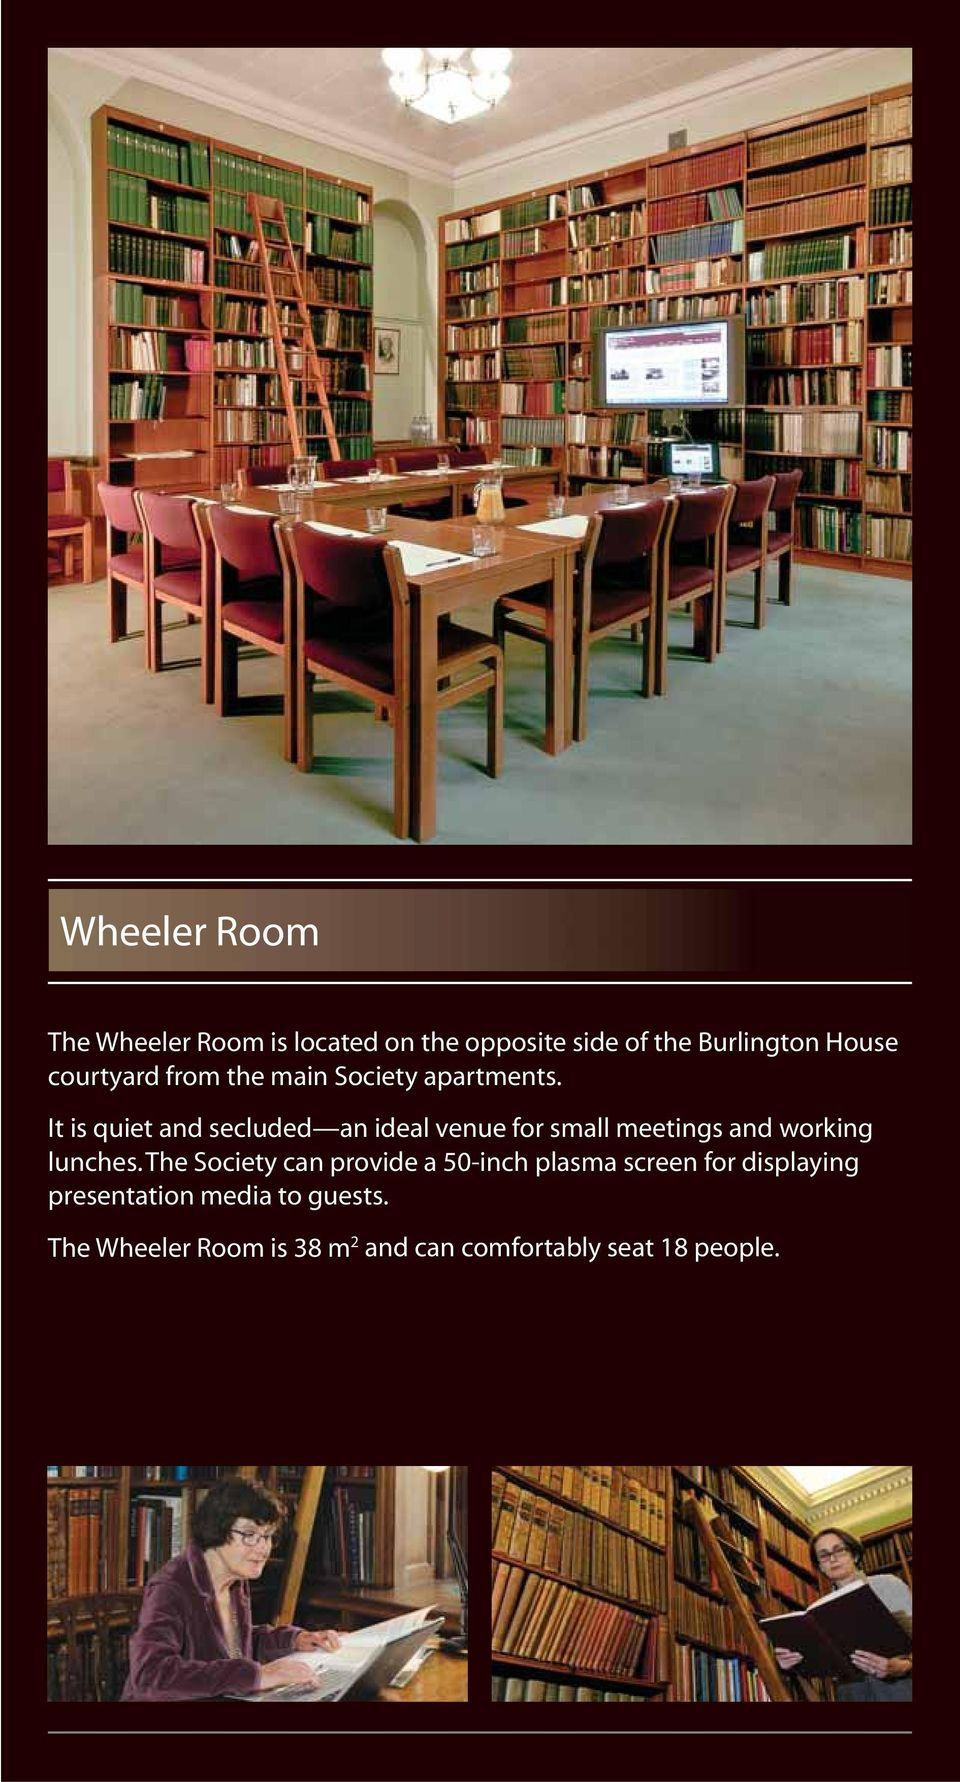 It is quiet and secluded an ideal venue for small meetings and working lunches.